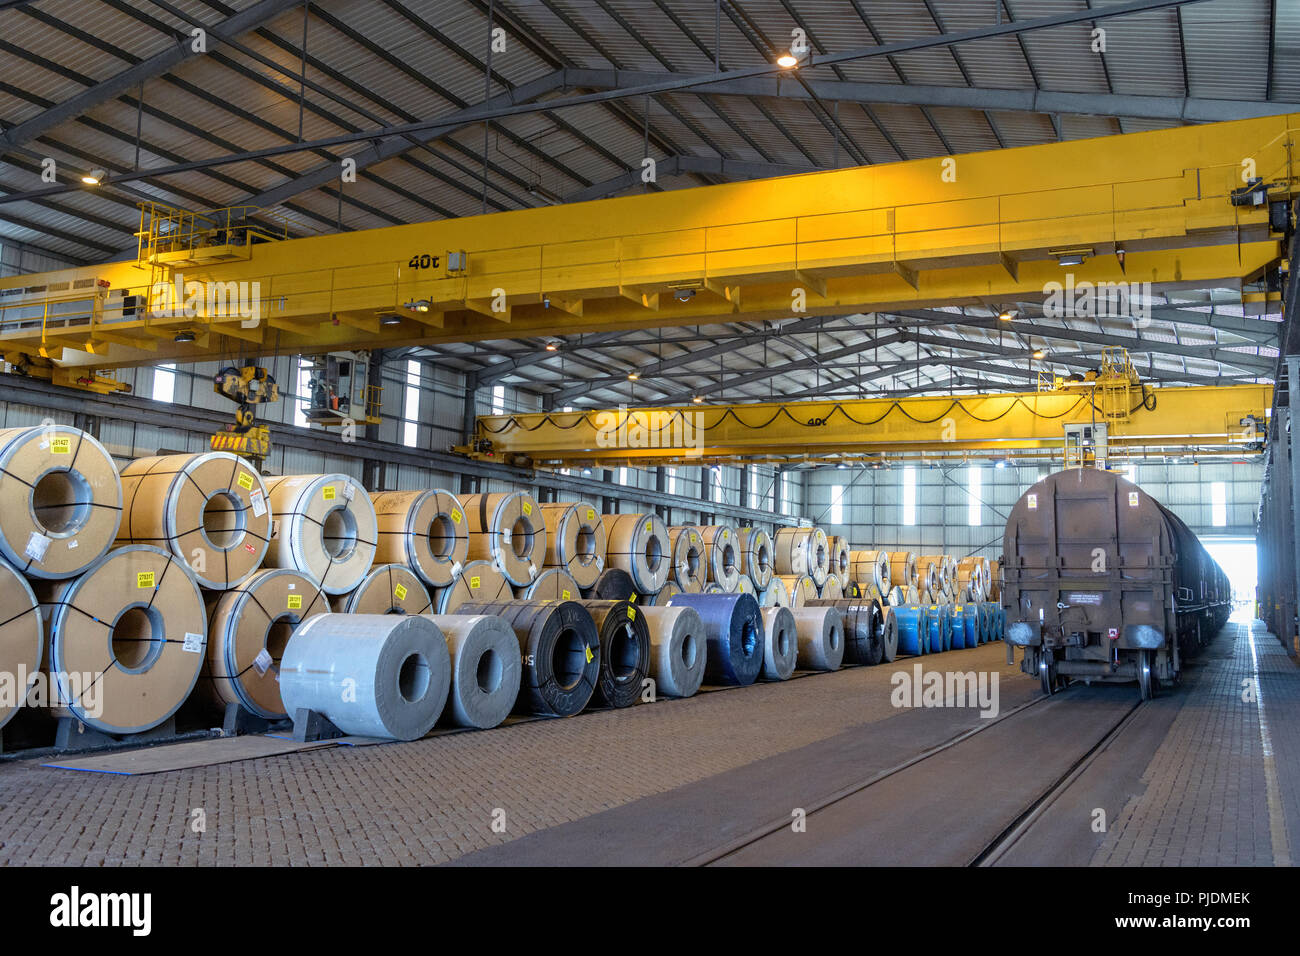 Rows of sheet steel in storage at port - Stock Image